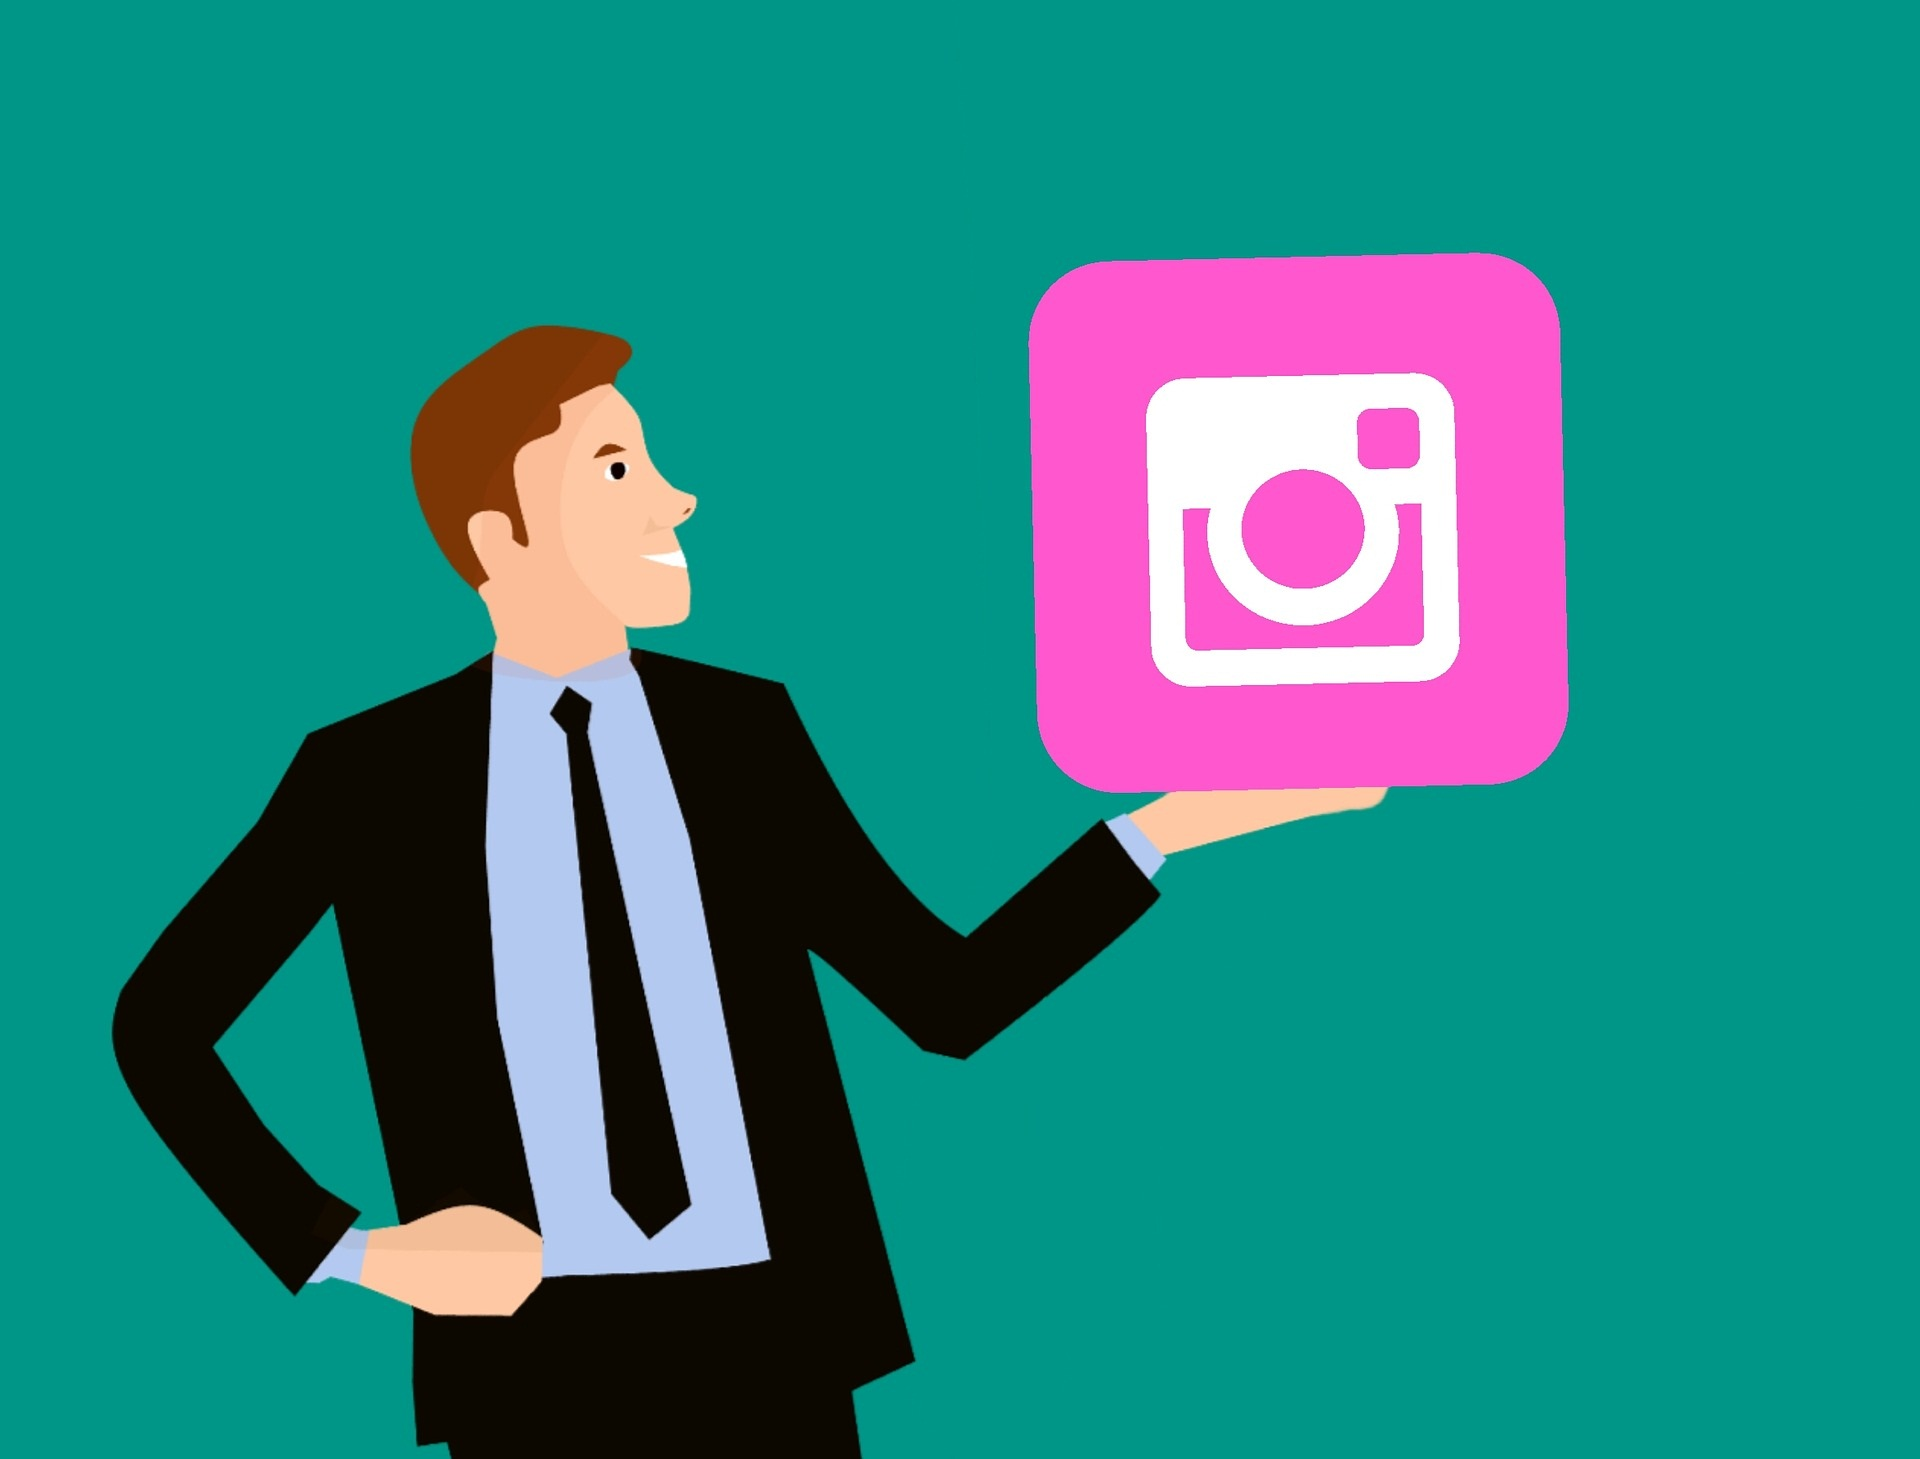 6 Best Practices For Instagram Stories To Take Your Branding To The Next Level